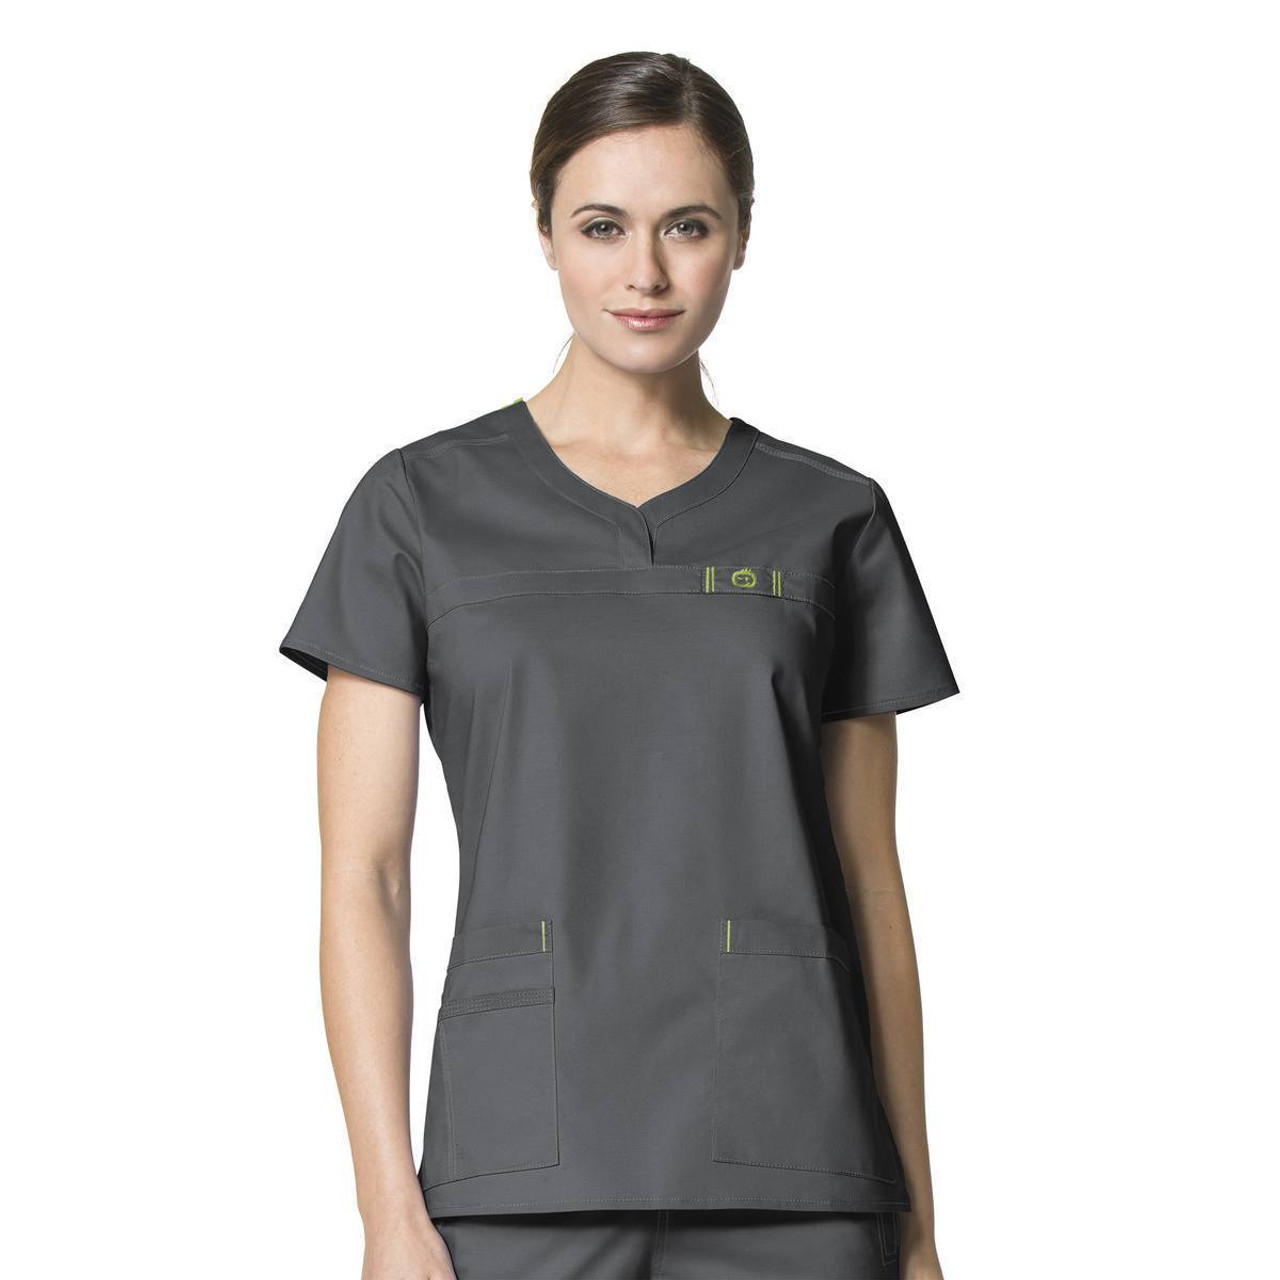 (6208) WonderFLEX Scrubs - Patience Curved Notch Neck Top